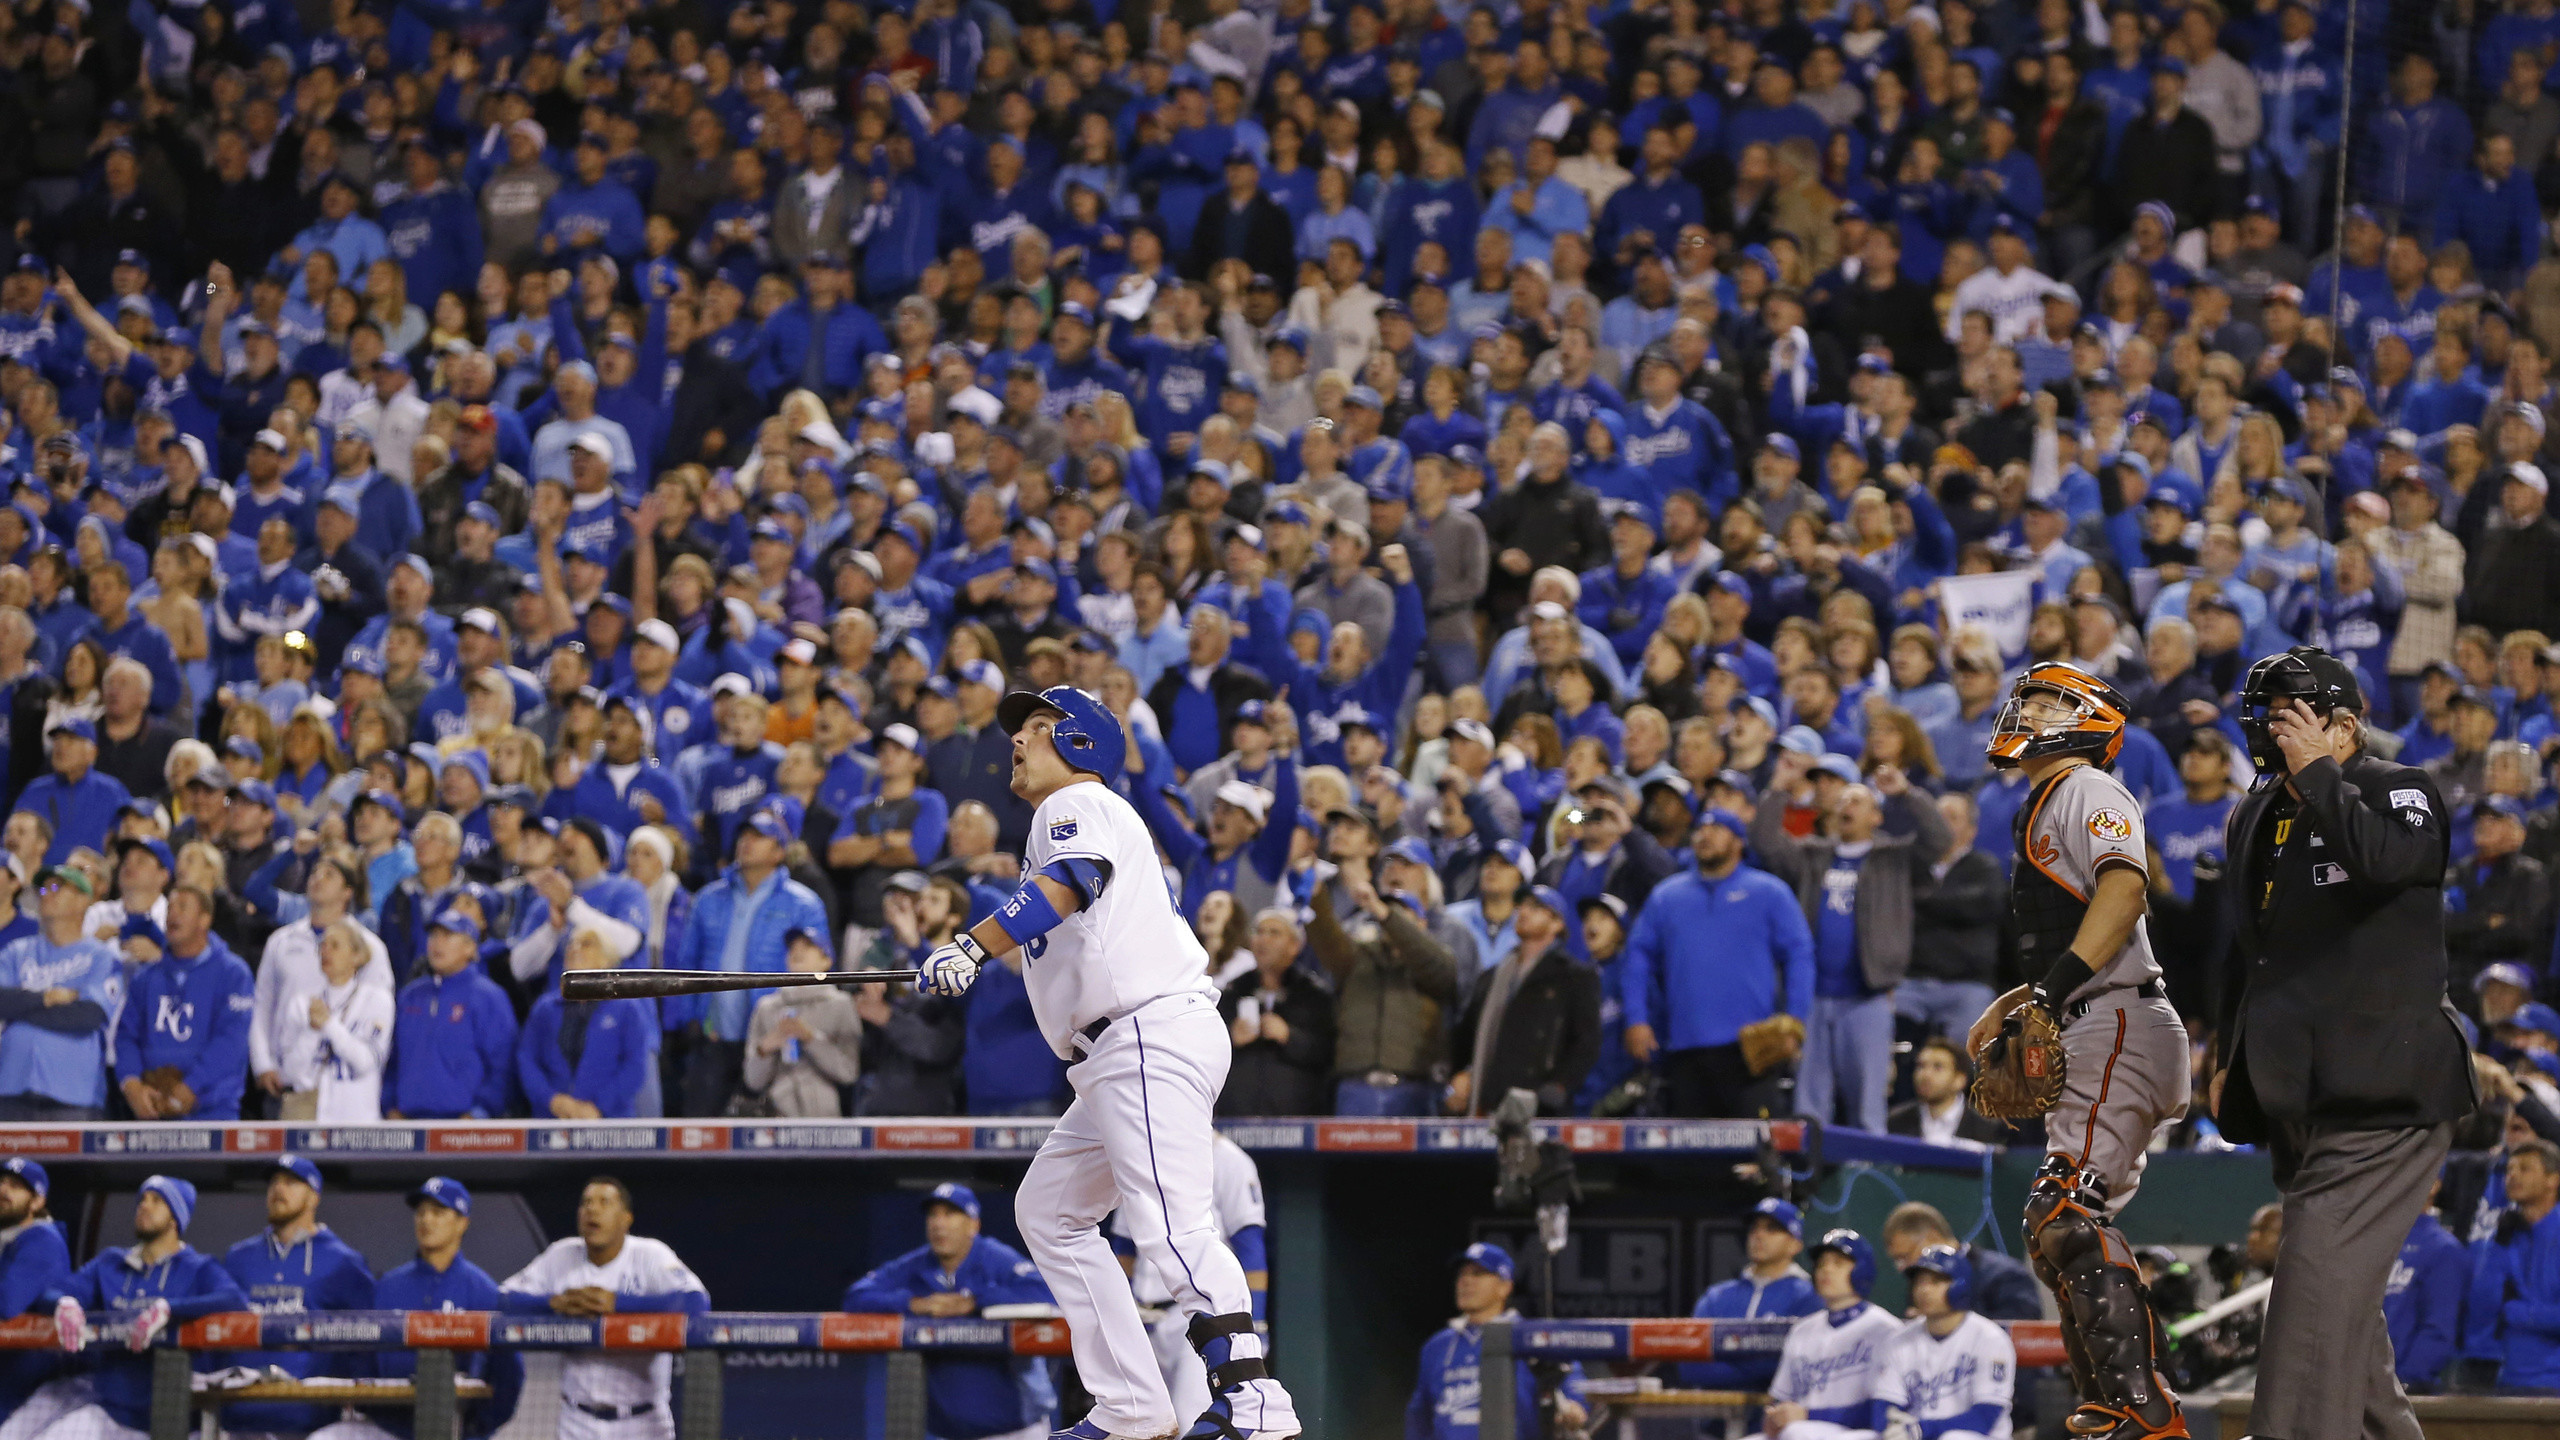 2560x1440 wallpaper.wiki-Wallpapers-Kansas-City-Royals-HD-PIC-